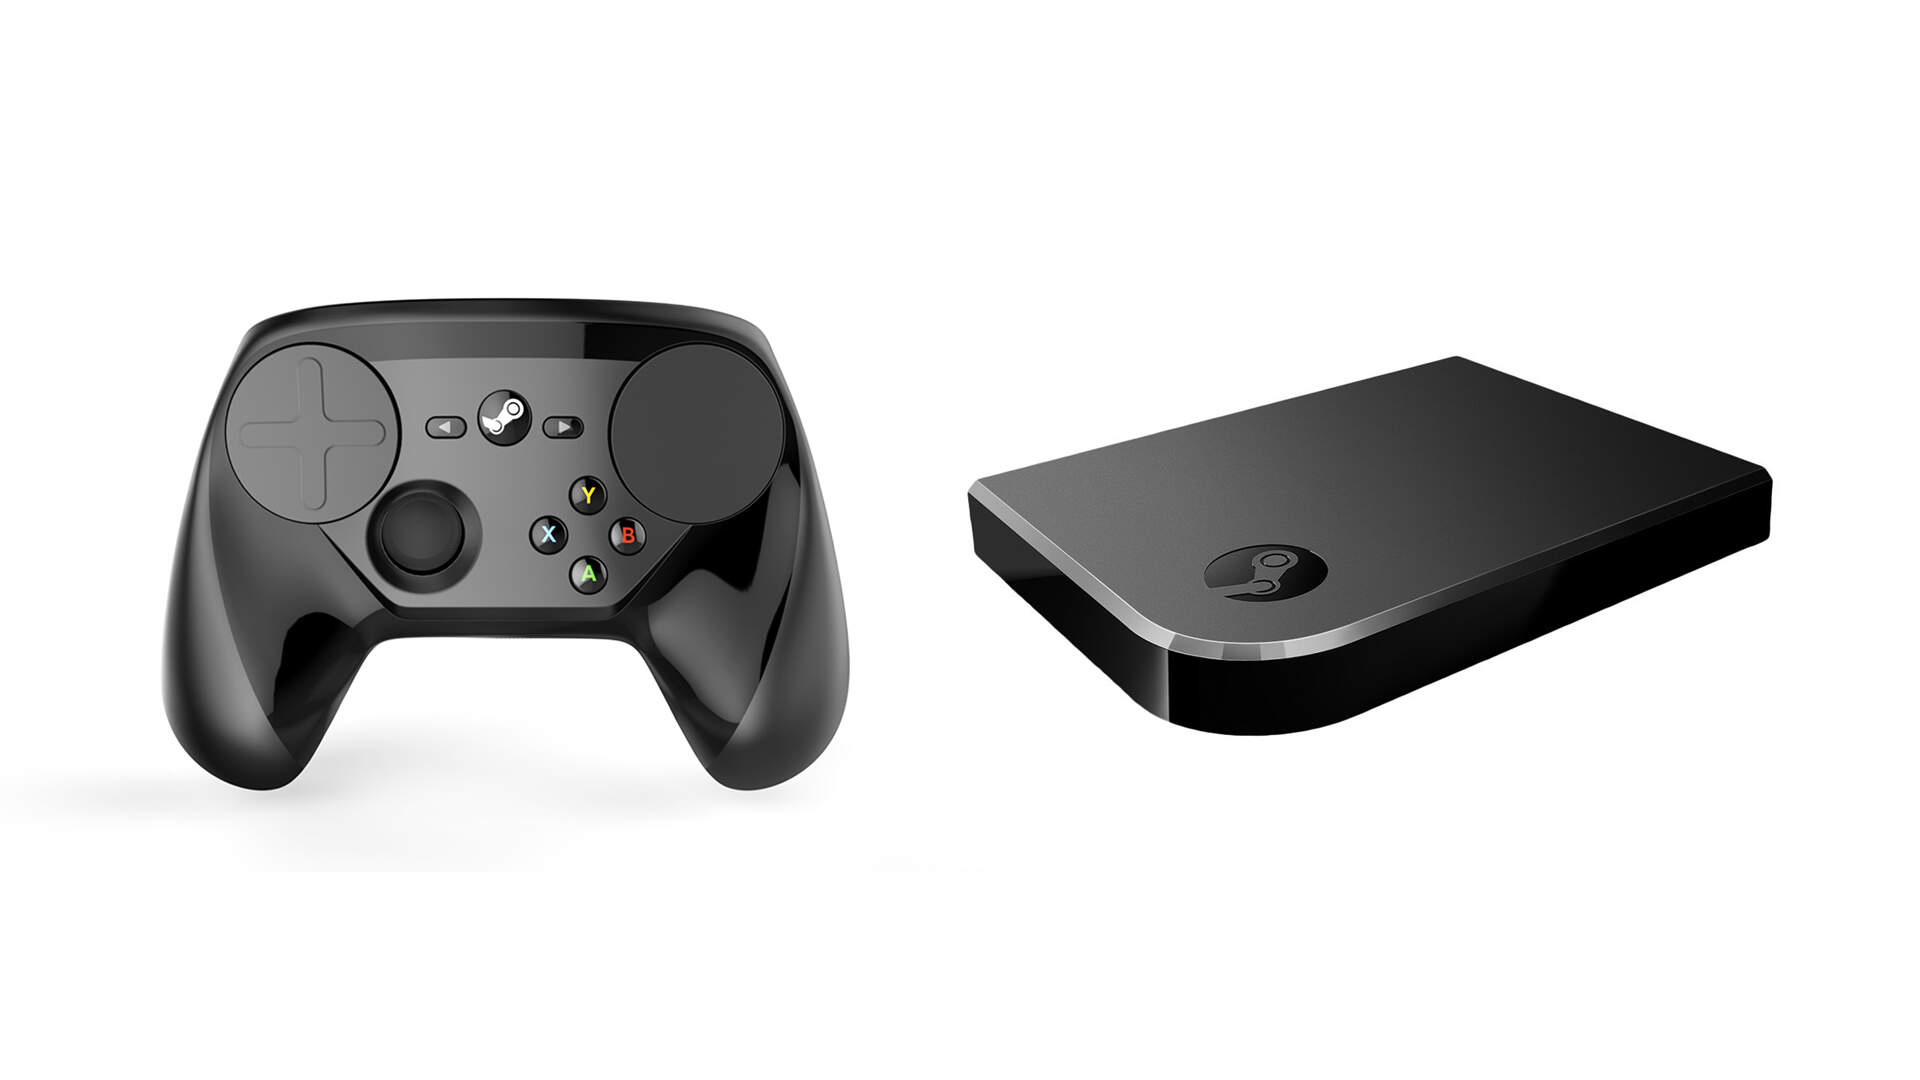 Steam Link and Controller both discounted again this week